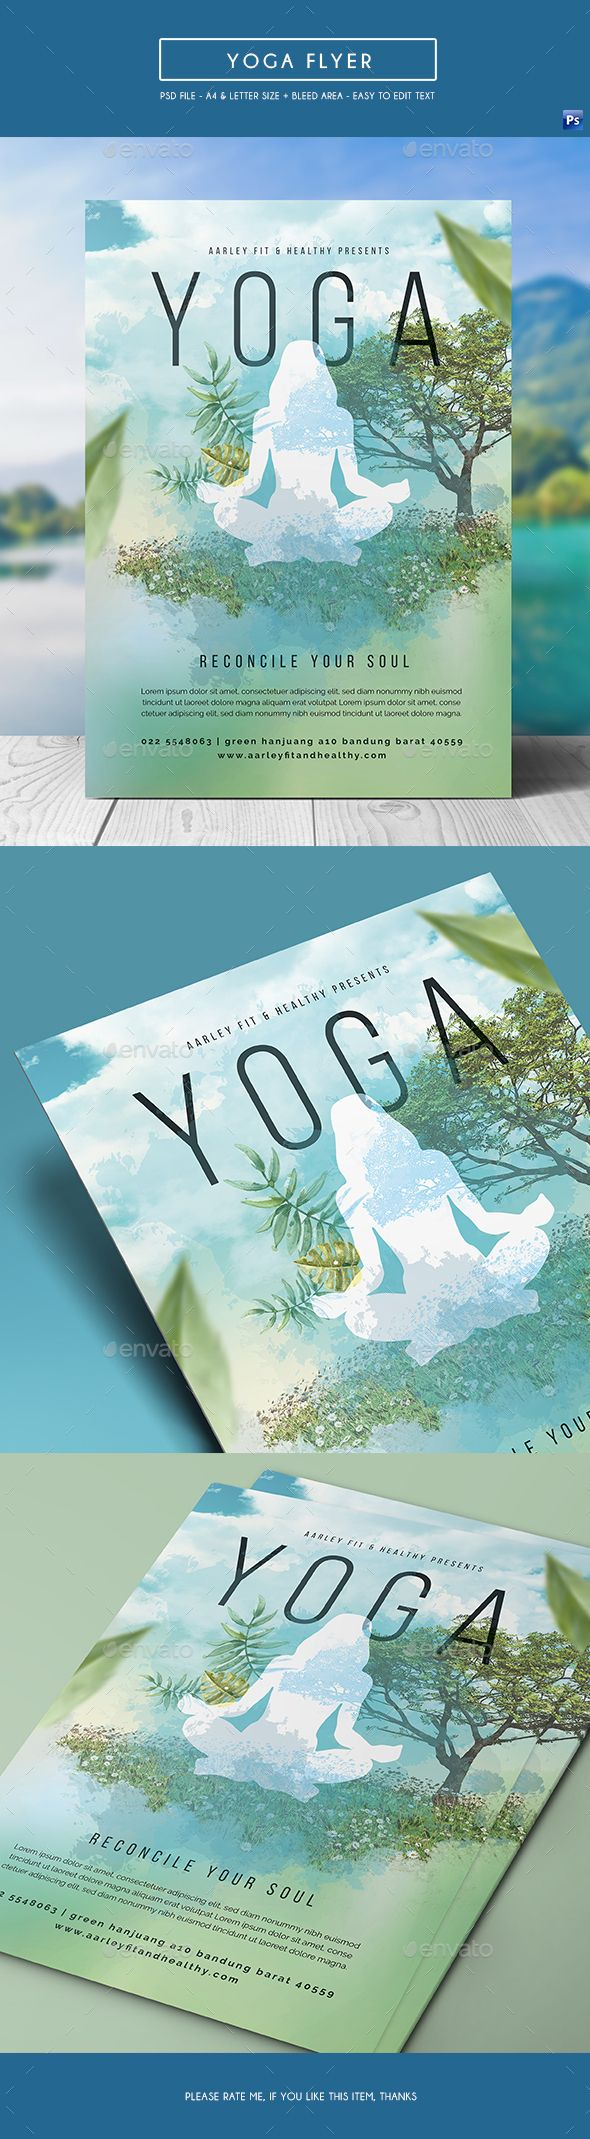 Yoga Flyer | Psd templates, Yoga and Template